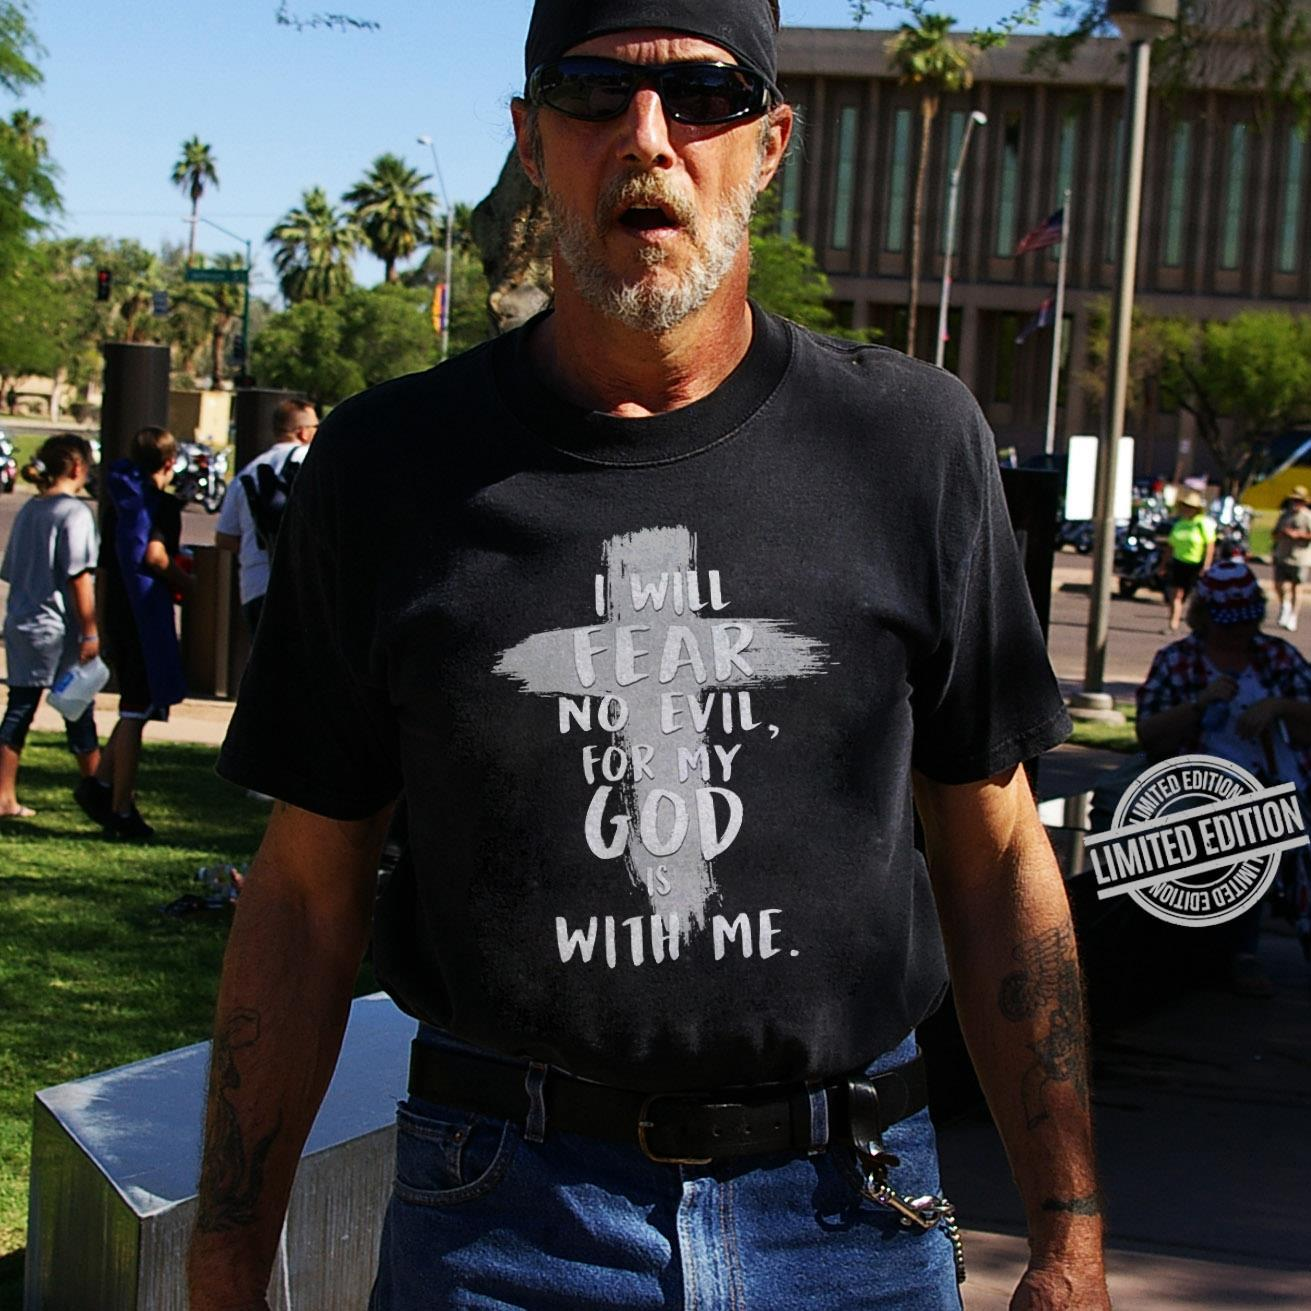 I Will Fear No Evil For My God Is With Me Shirt